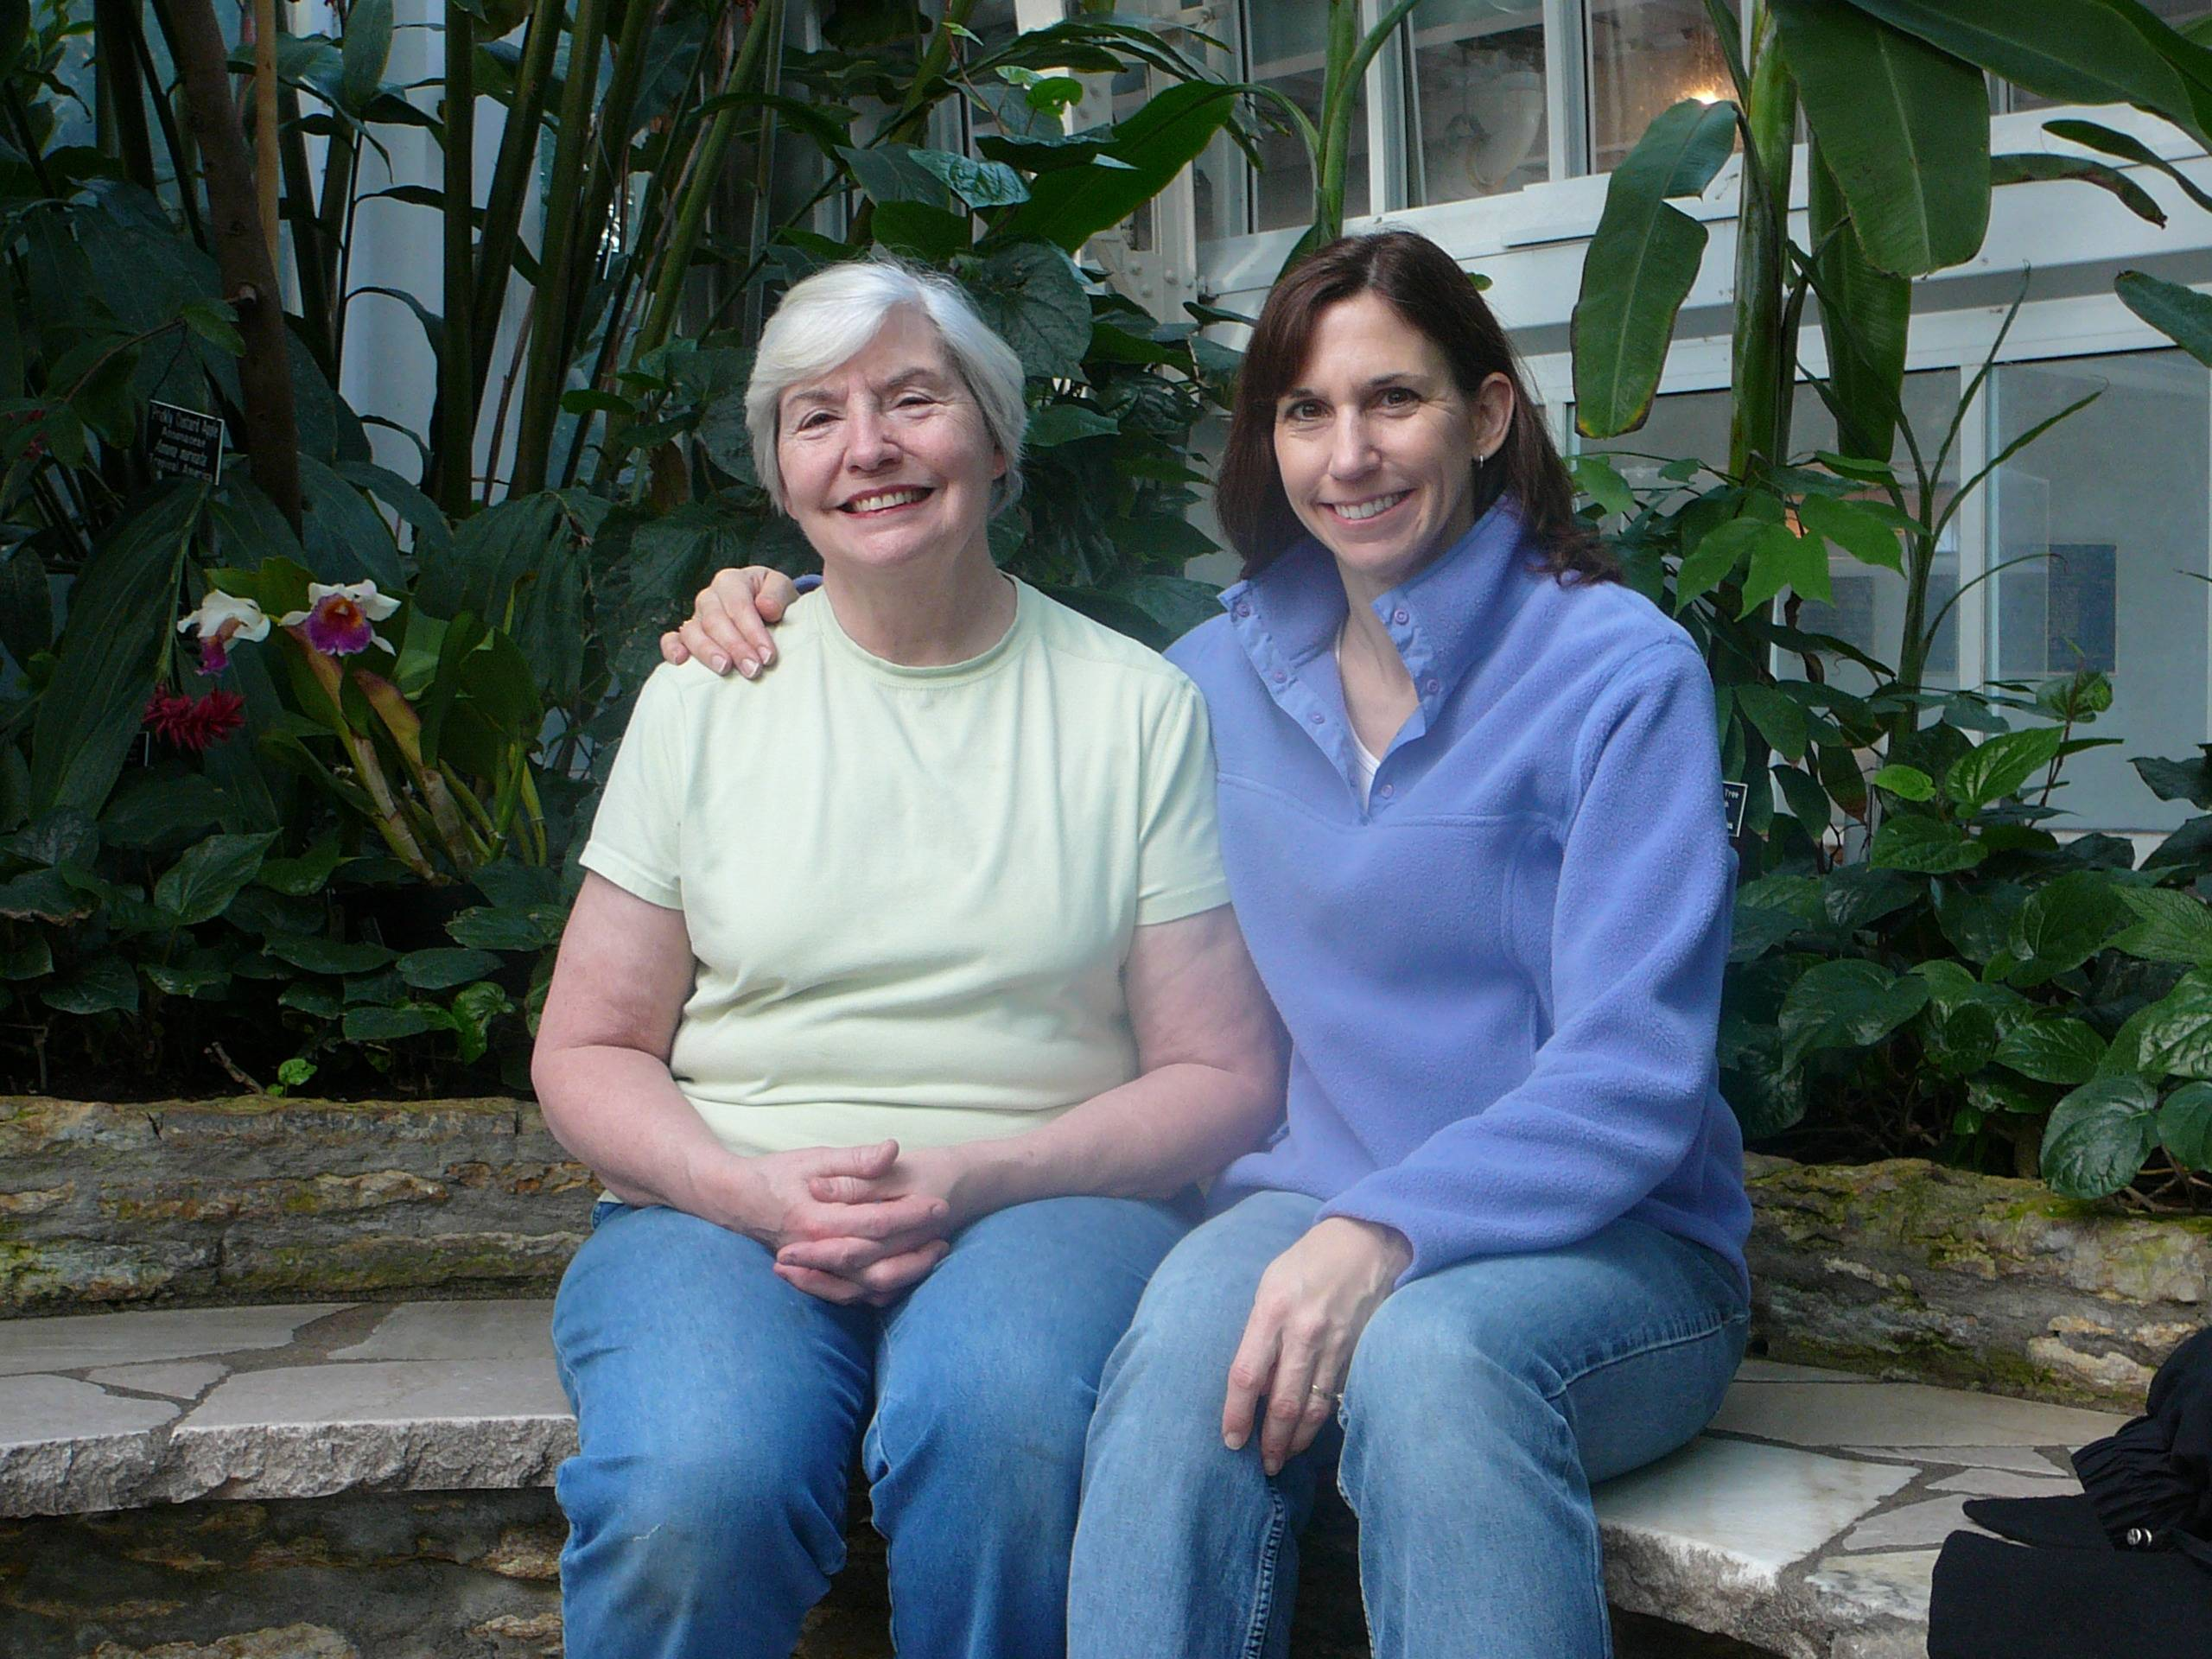 Asst. Opinion editor Colleen Thomas and her mom, Barbara Foster, enjoy a day at the Como Park Conservatory in St. Paul. They steered clear of Mall of America the day after Christmas and instead absorbed the landmark's tropical air -- a winter oasis in Minnesota.